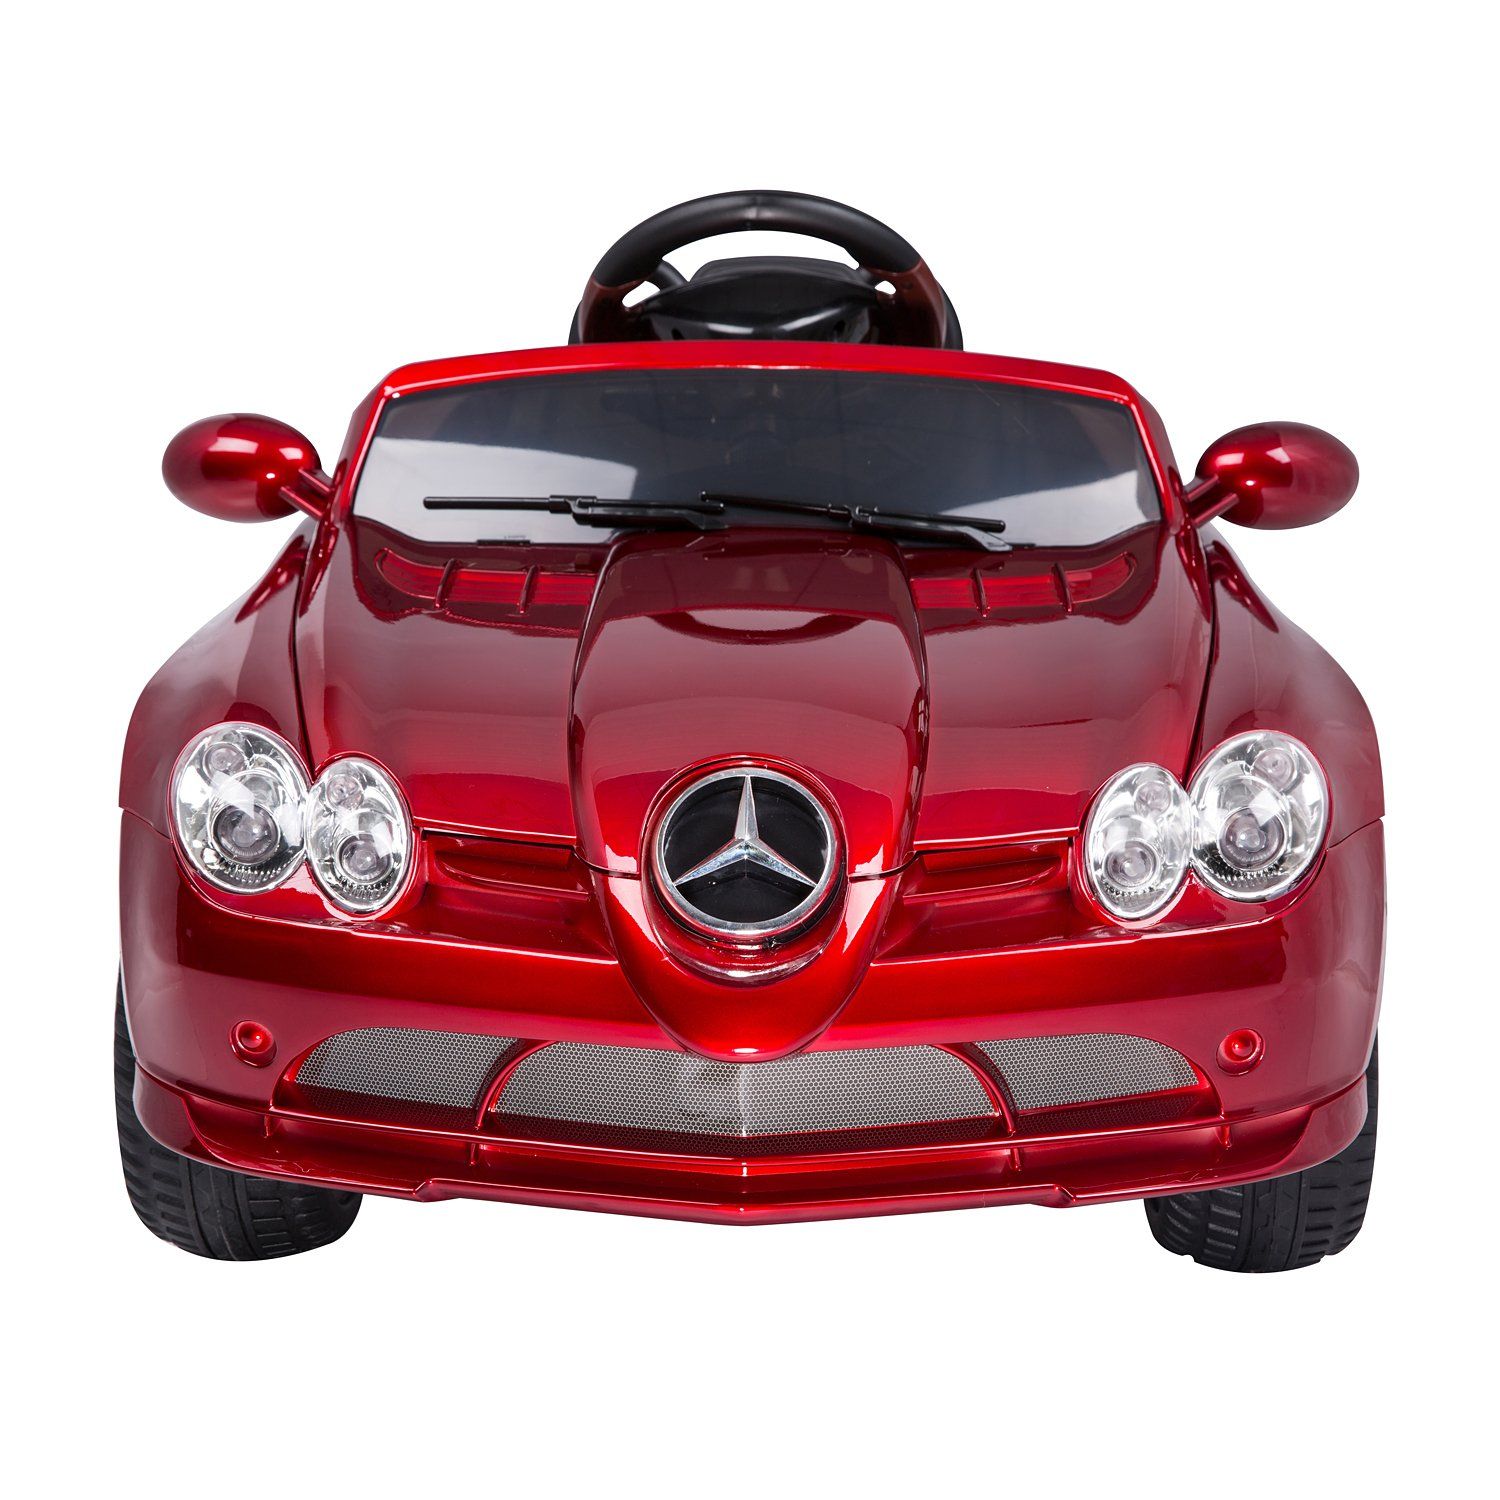 amazoncom mercedes benz 722s kids 12v electric ride on toy car w parent remote control red by aosom toys games